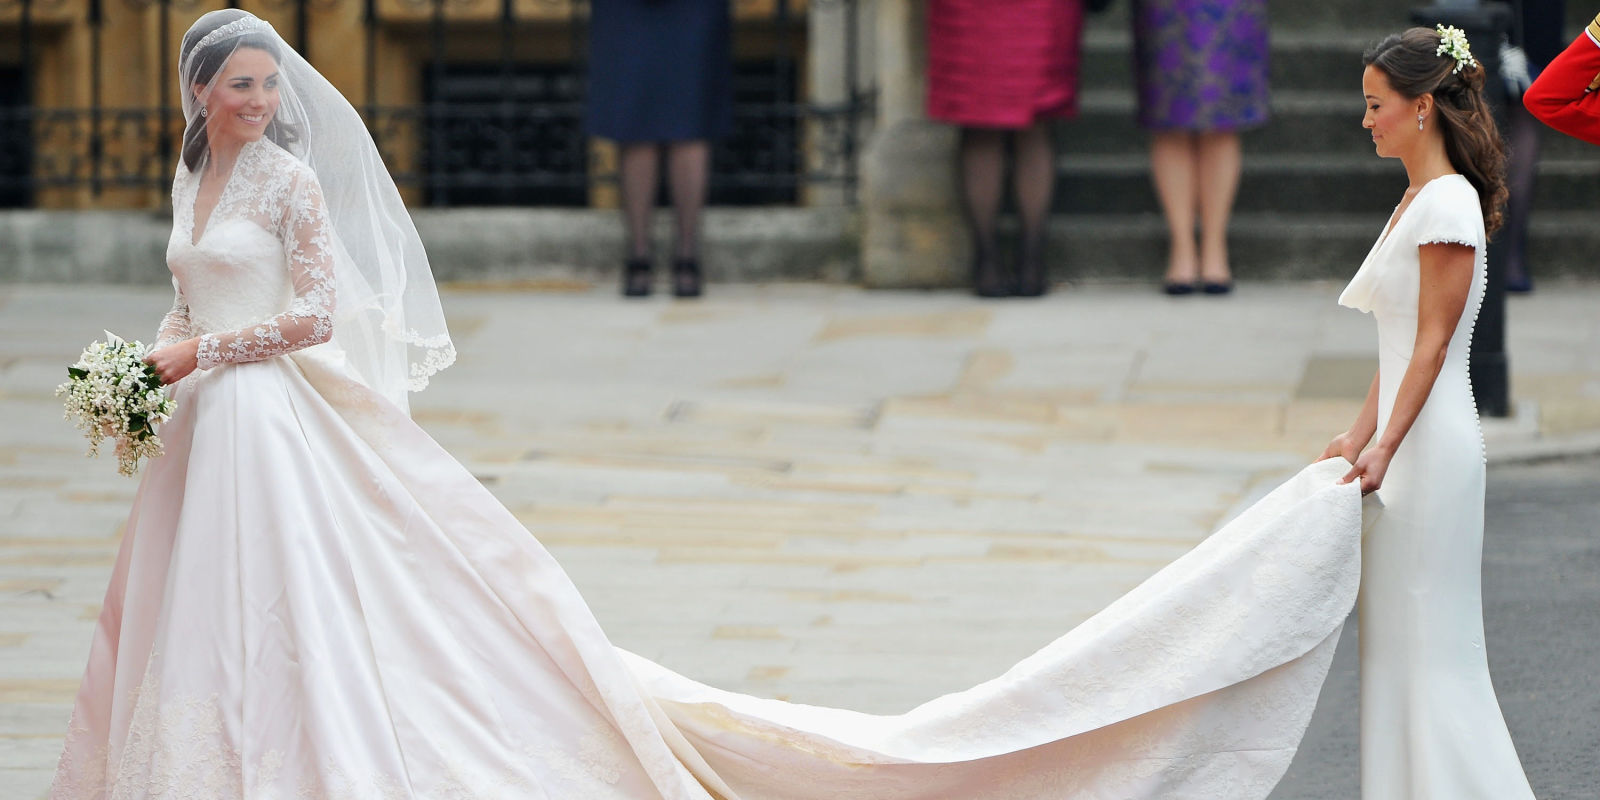 Alexander Mcqueen Is Being Sued Over Kate Middleton 39 S